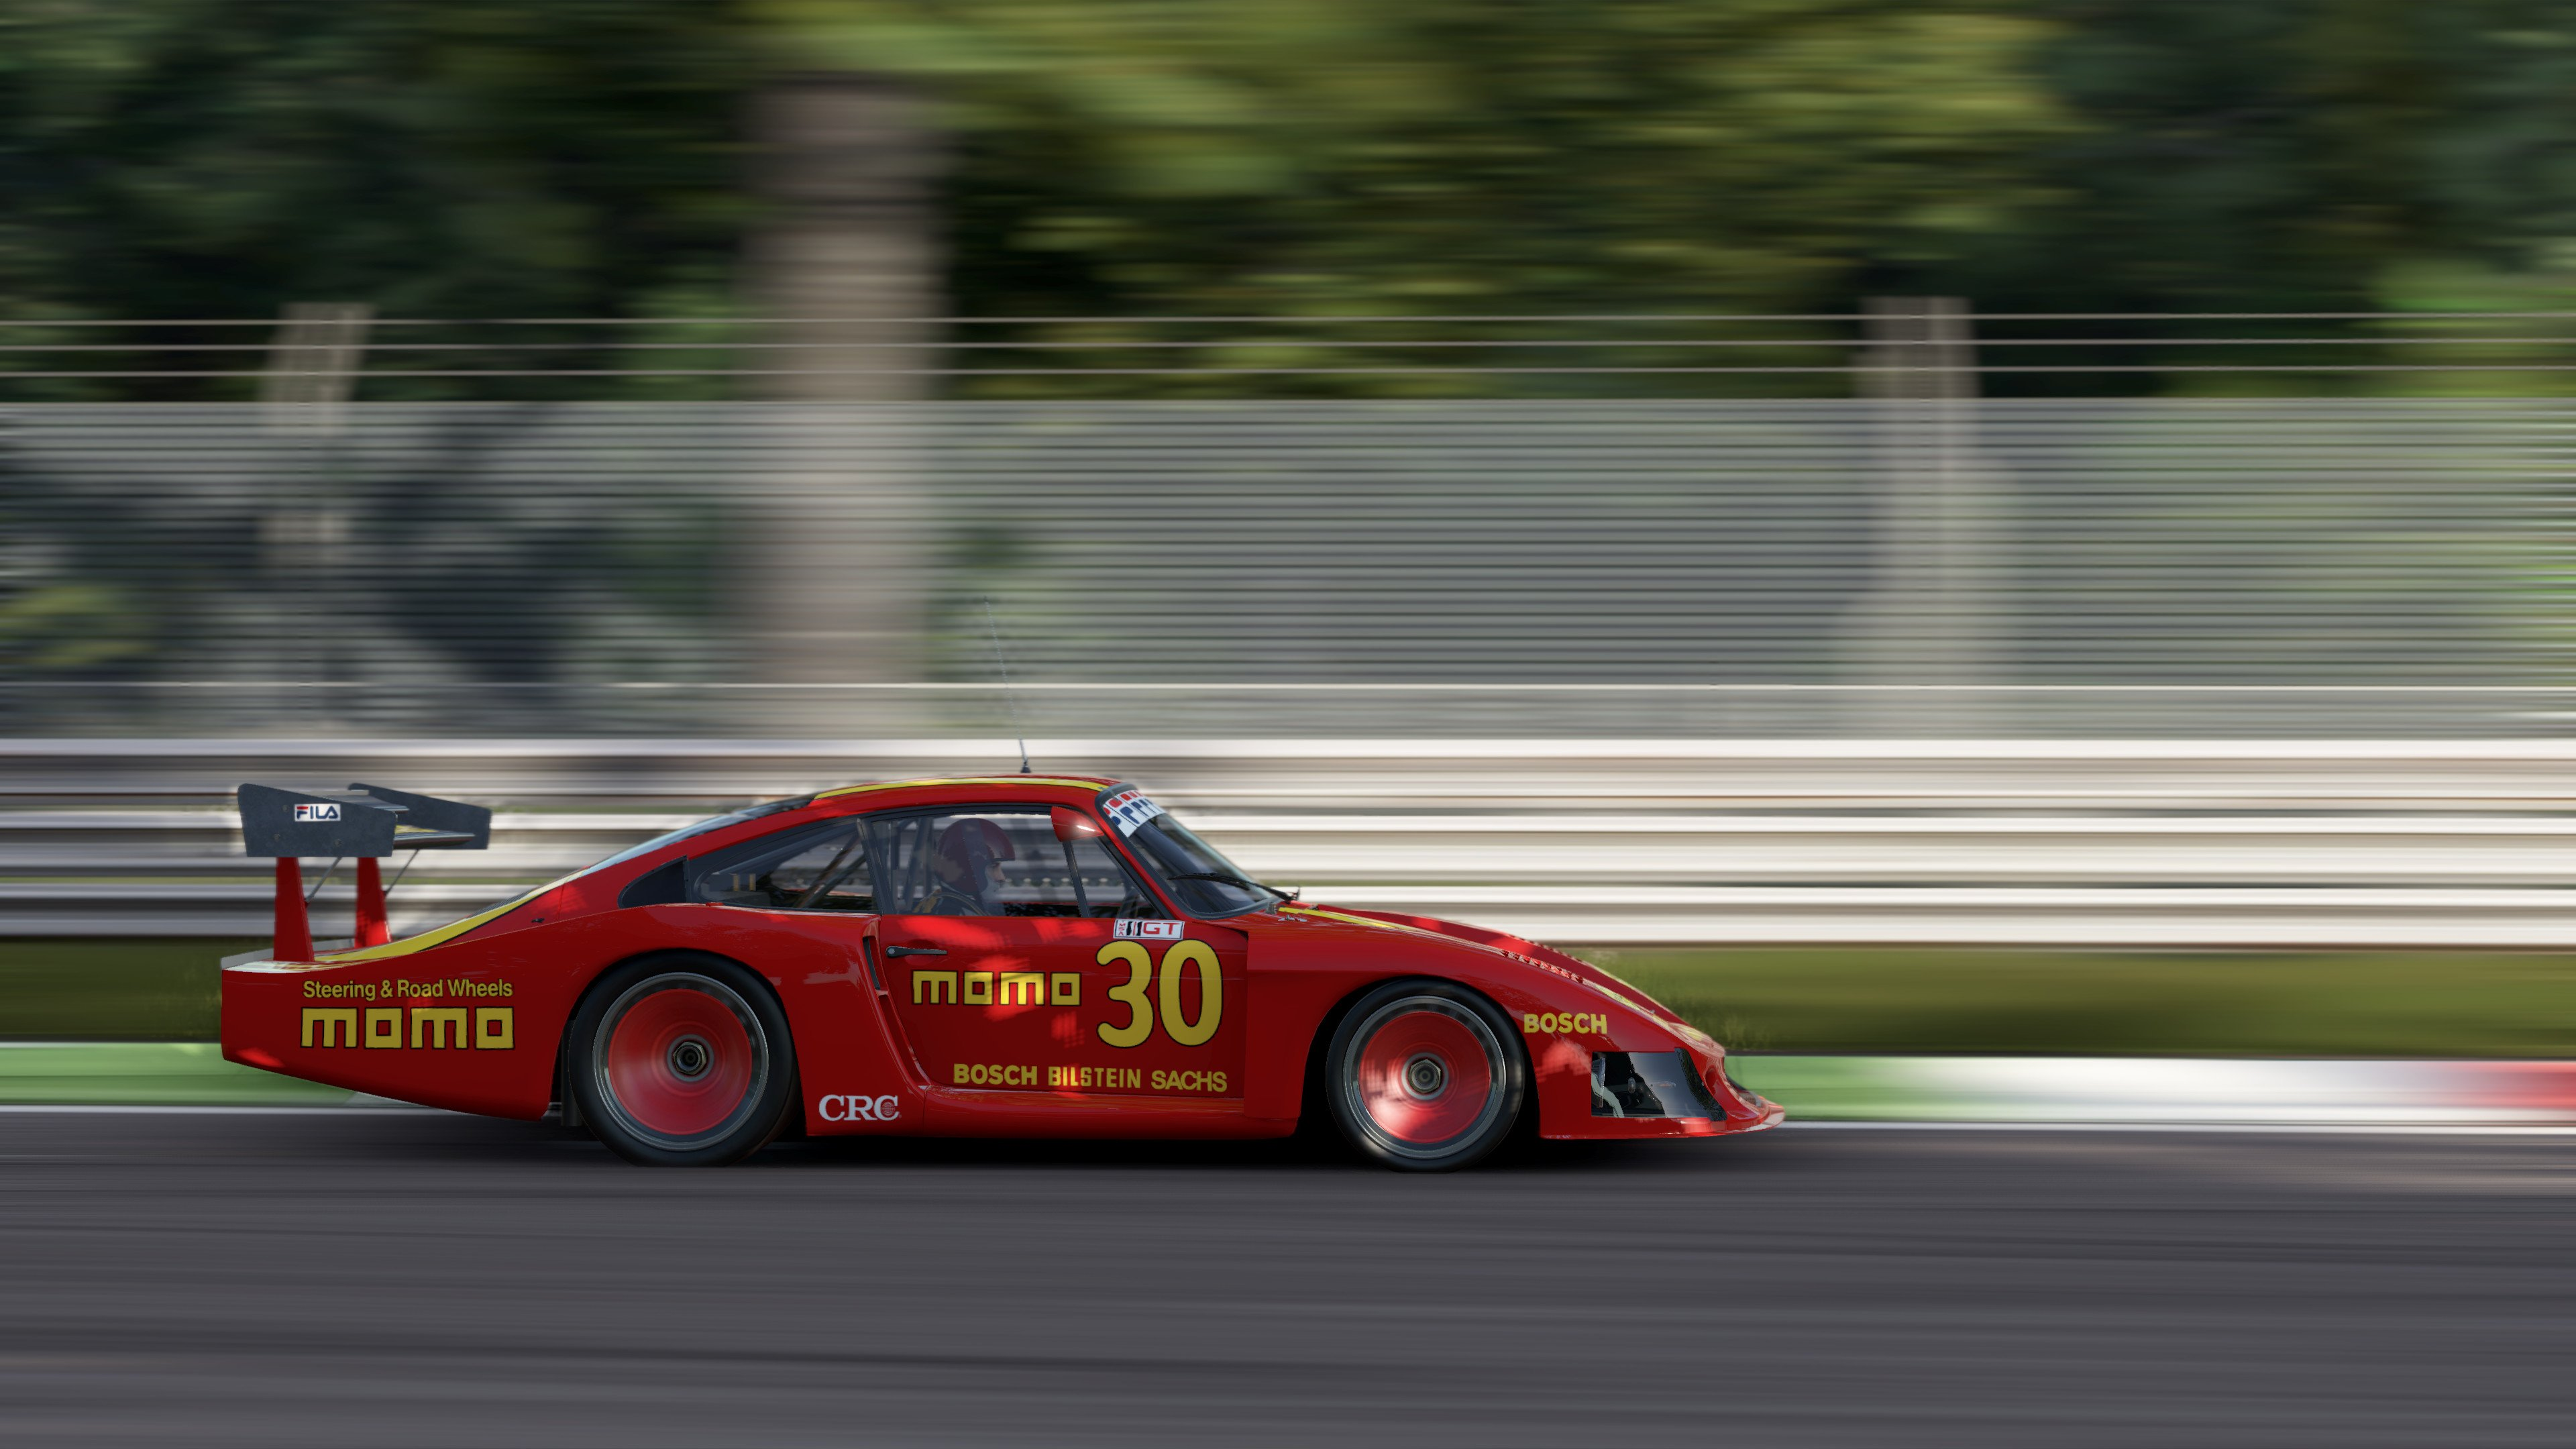 Project CARS 2 Porsche Legends Pack Porsche 935